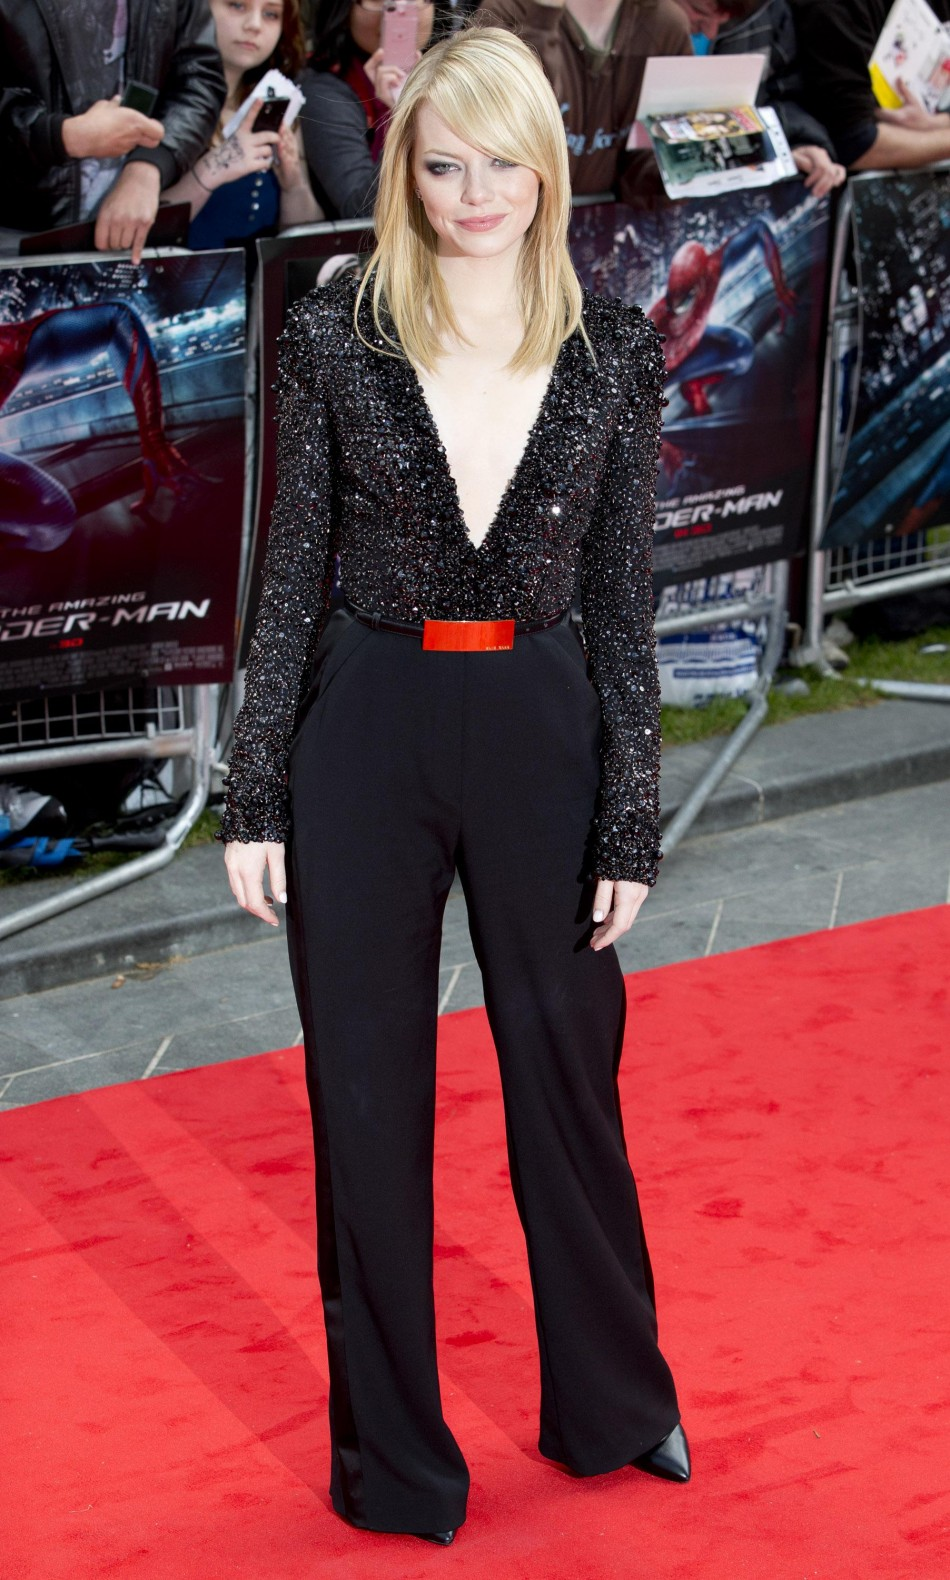 U.S. actress Stone arrives for the British premiere of quotThe Amazing Spider-Manquot at Leicester Square in London